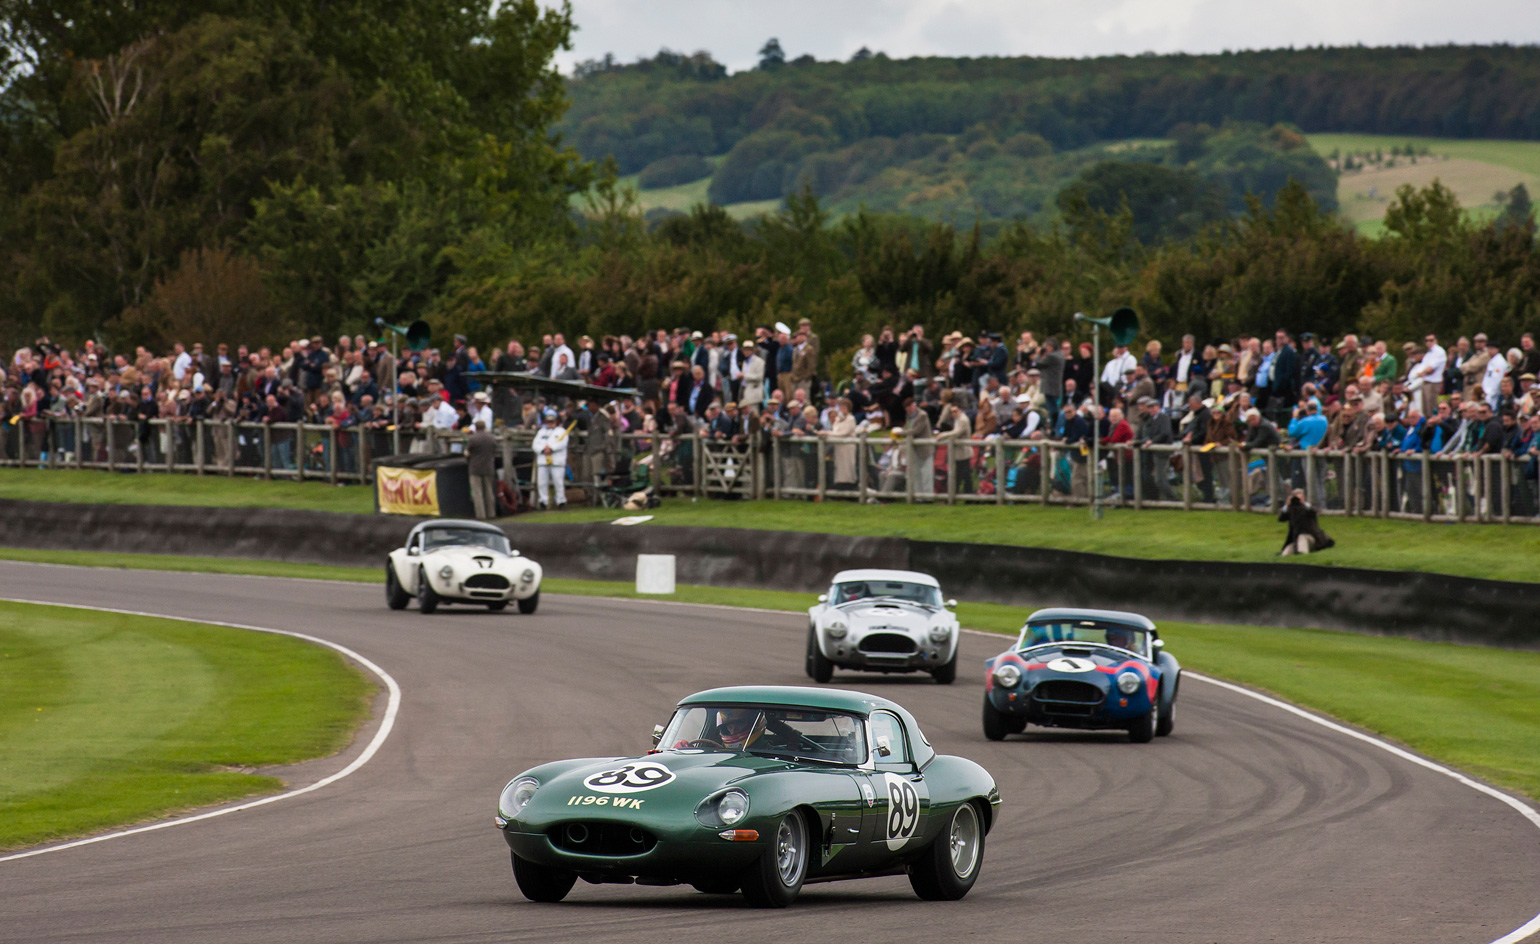 Hotels Near Goodwood Motor Circuit